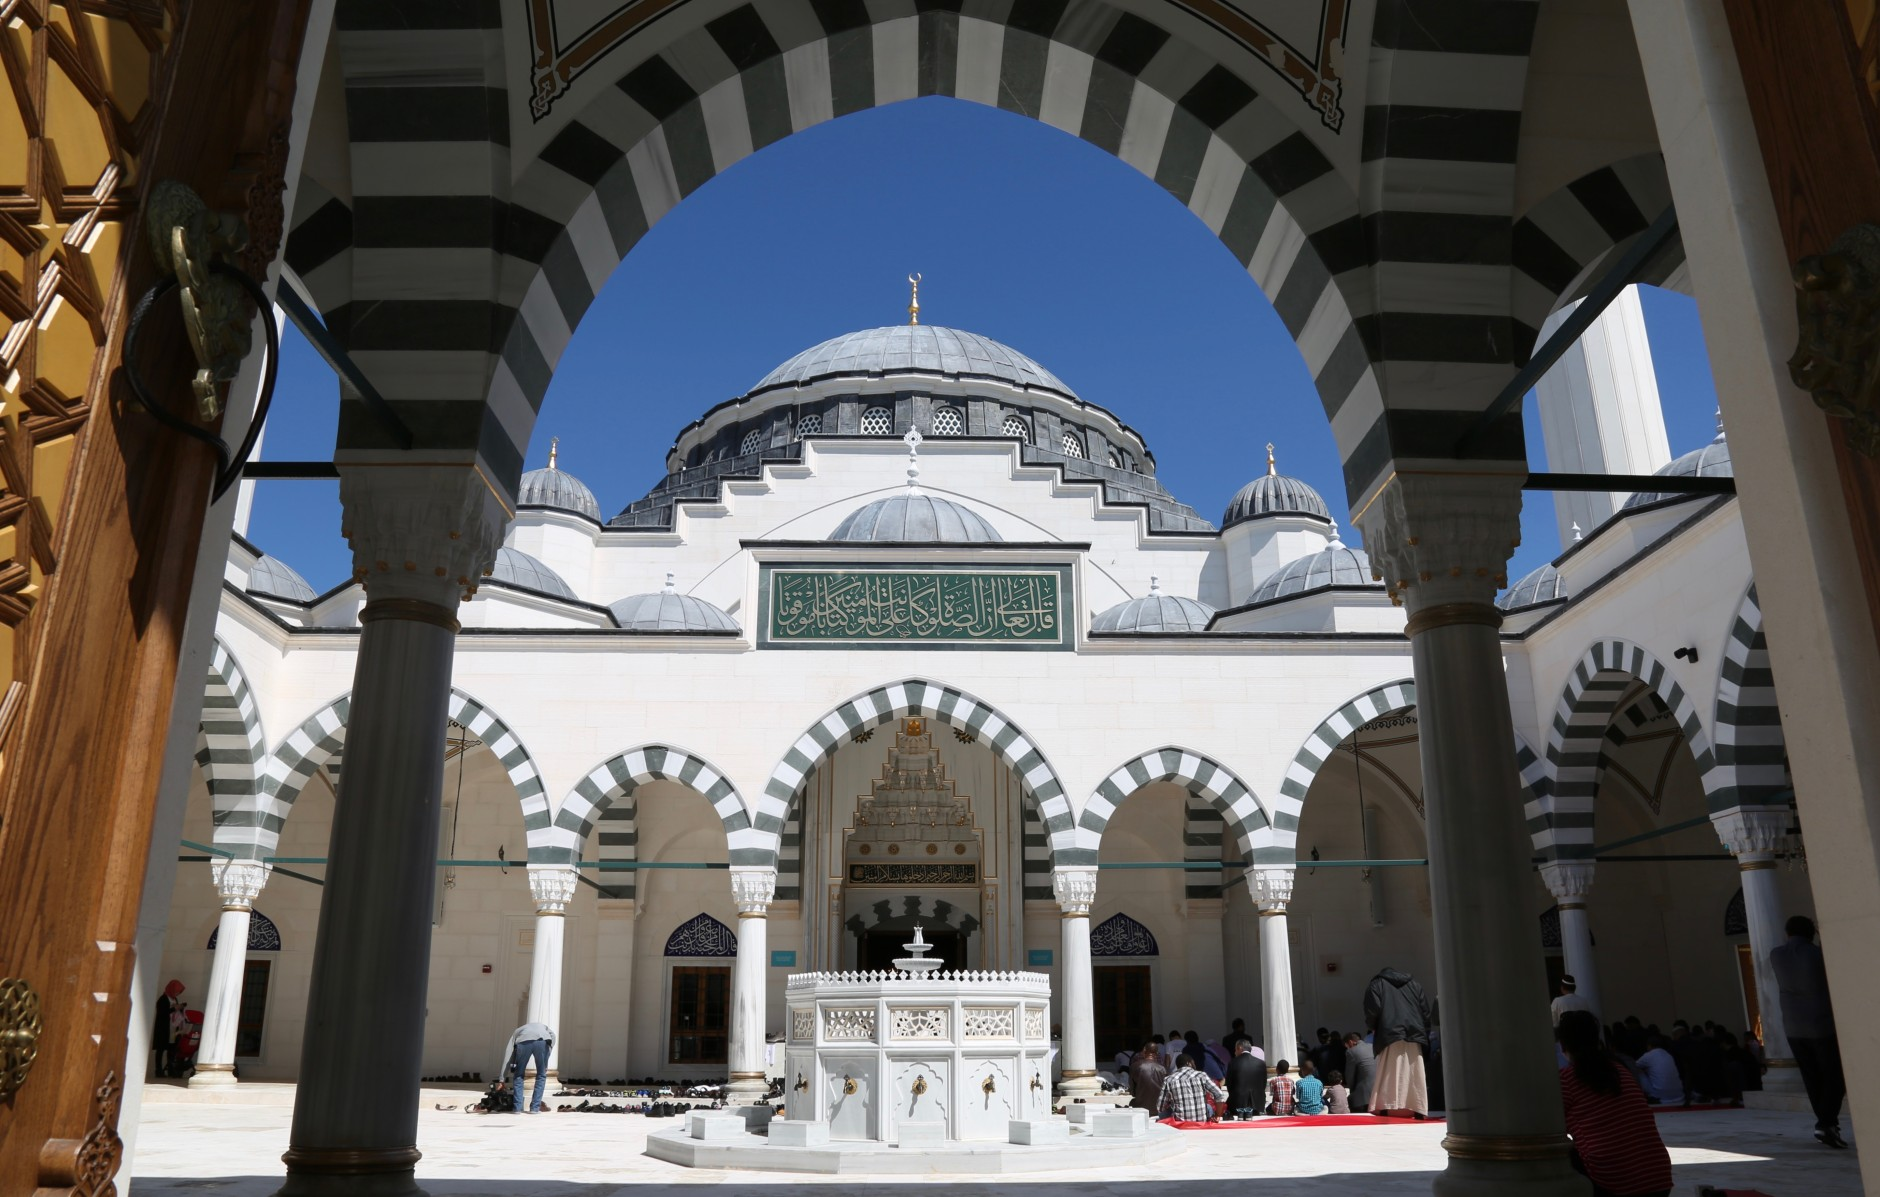 the Diyanet Center of America's mosque on April 1, 2016 in Lanham, Md. The official opening for the Turkish cultural center is on Saturday April 2, 2016. Turkish President Recep Tayyip Erdogan is expected to speak at the event. (WTOP/Omama Altaleb)